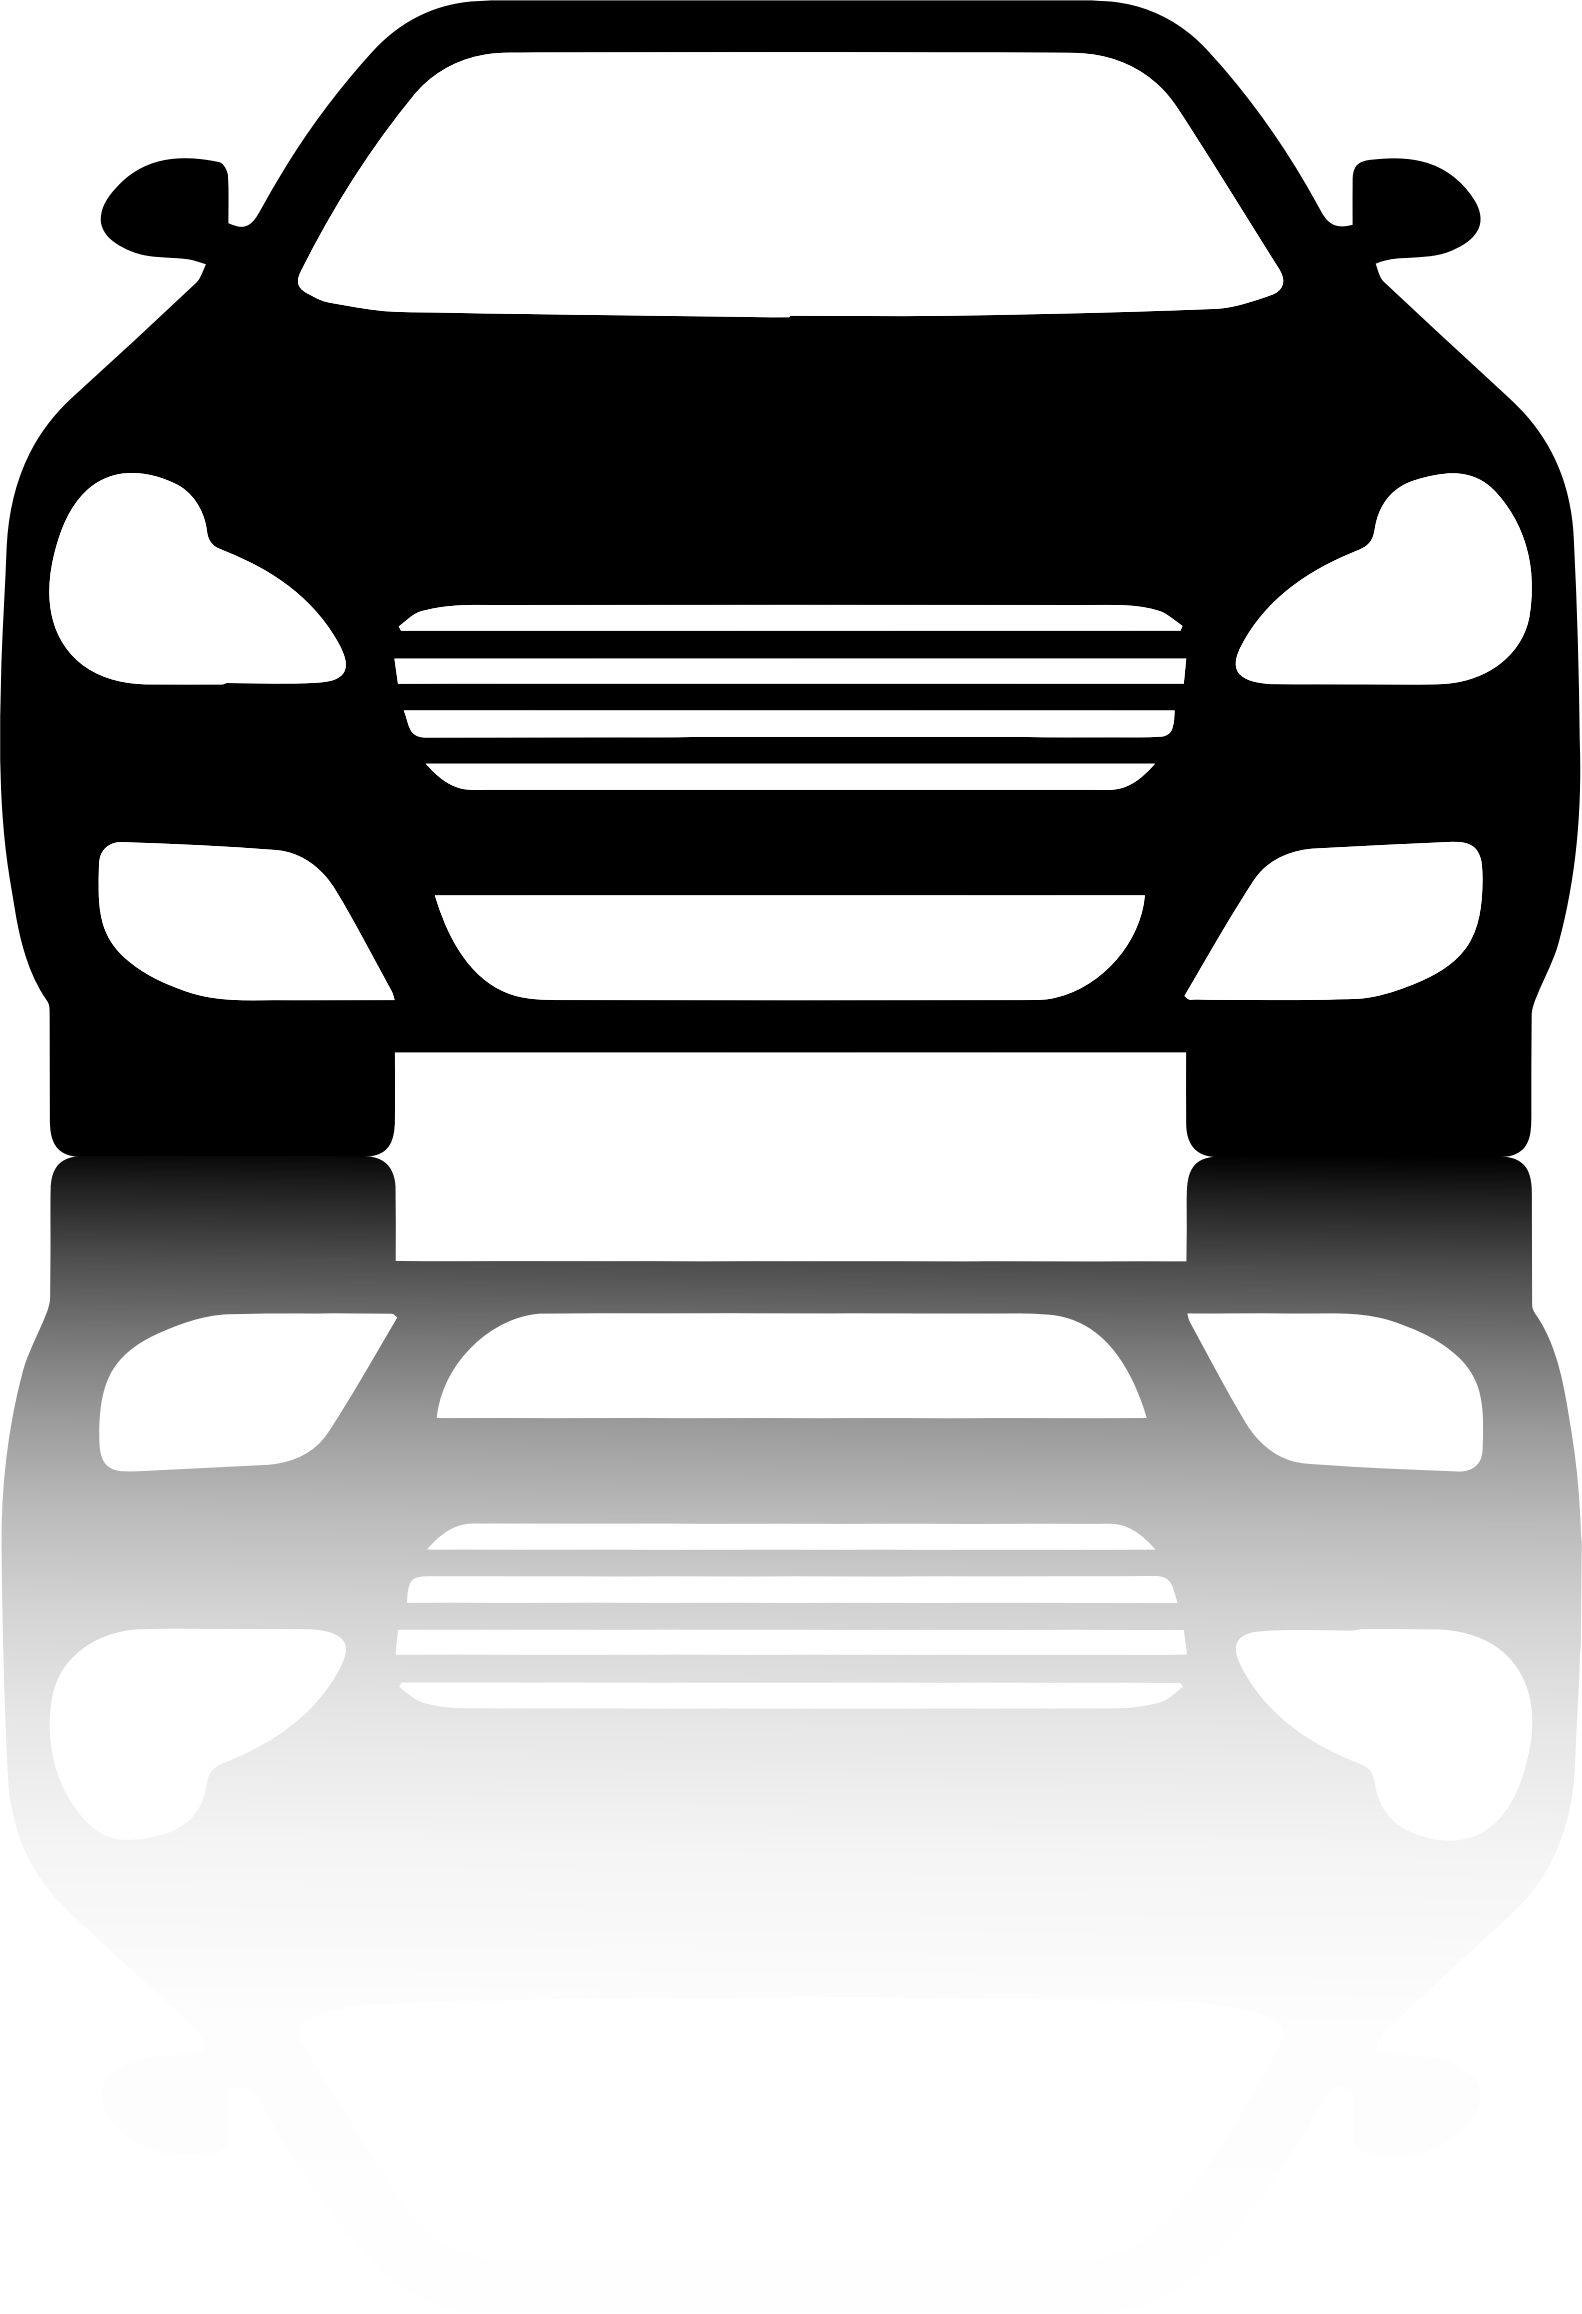 Car clipart shadow. Black front view with